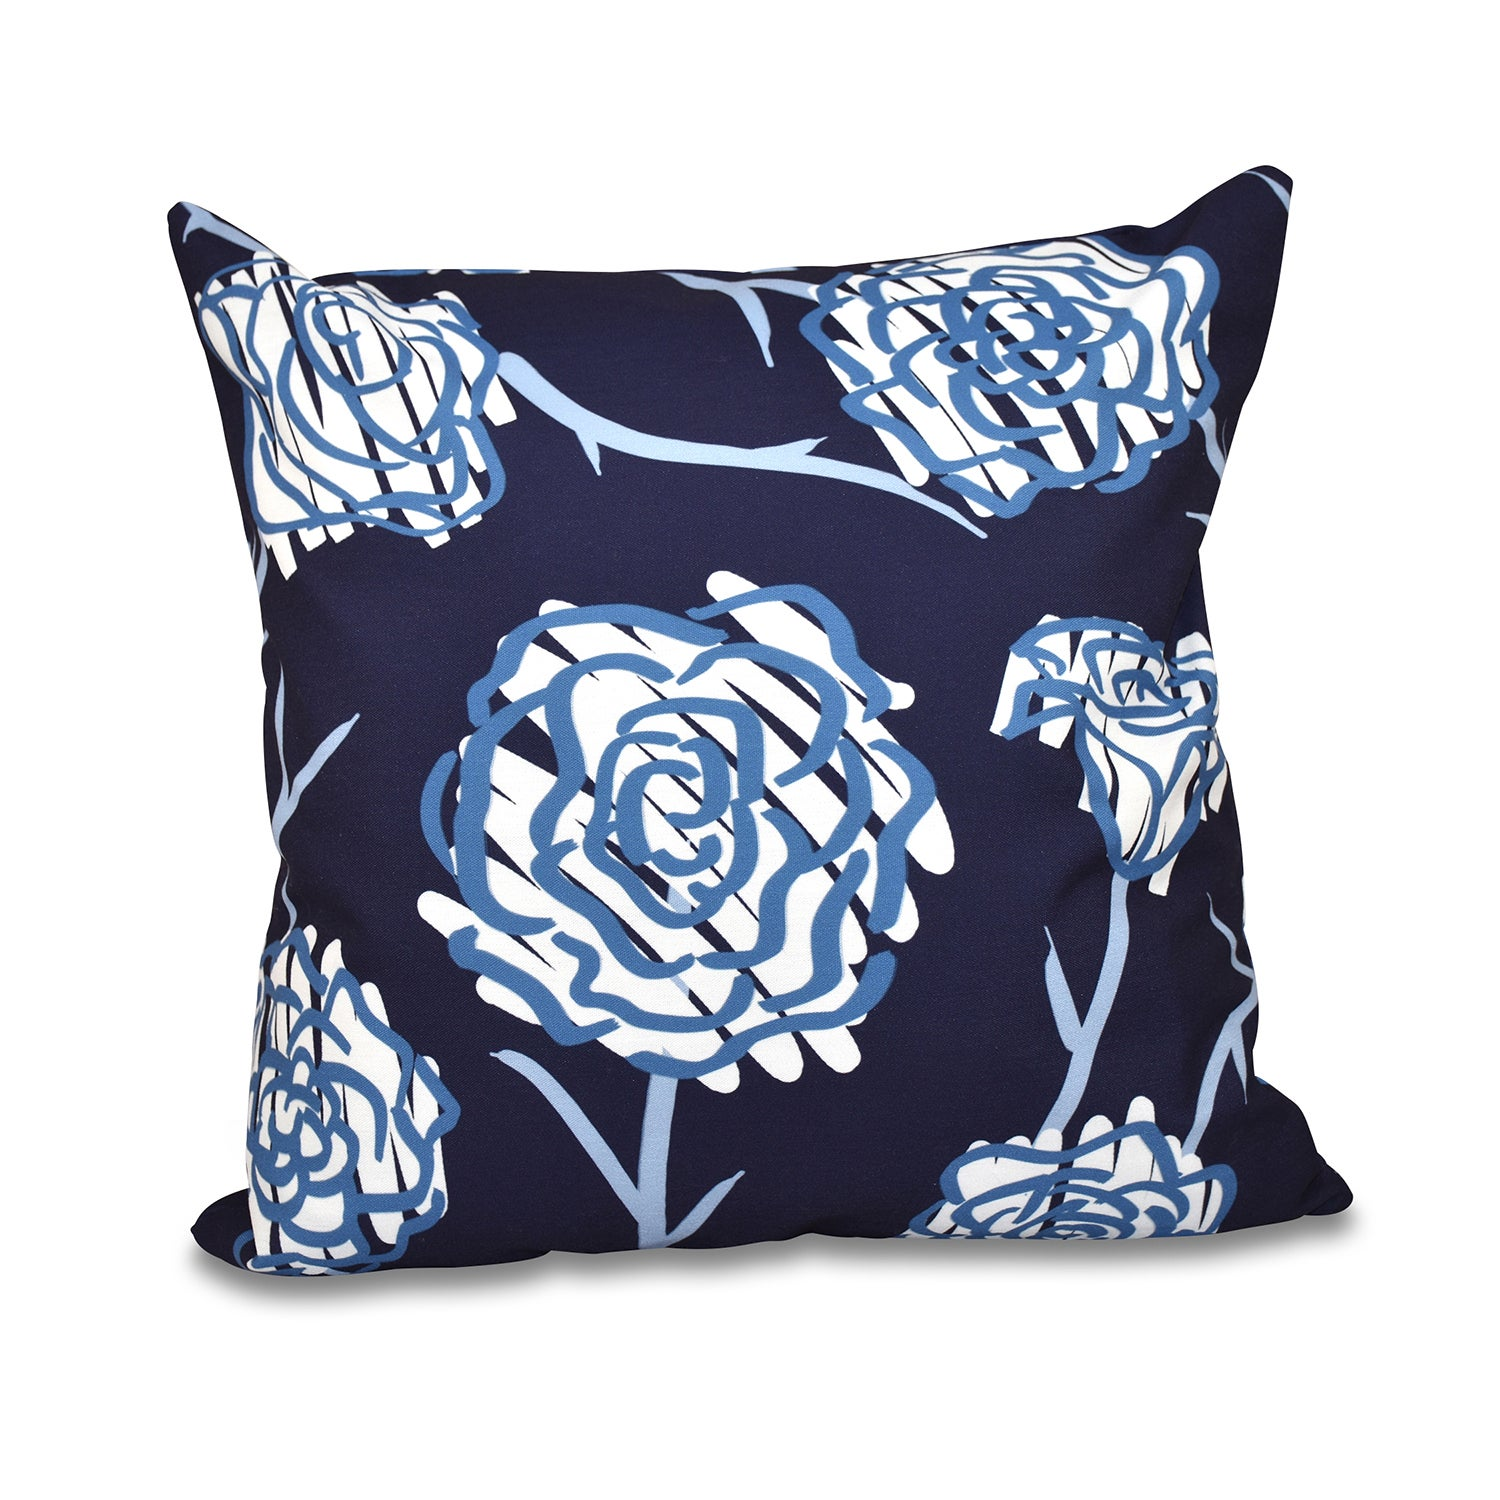 Spring Floral 2 Floral Print 20 Inch Throw Pillow On Sale Overstock 11529955